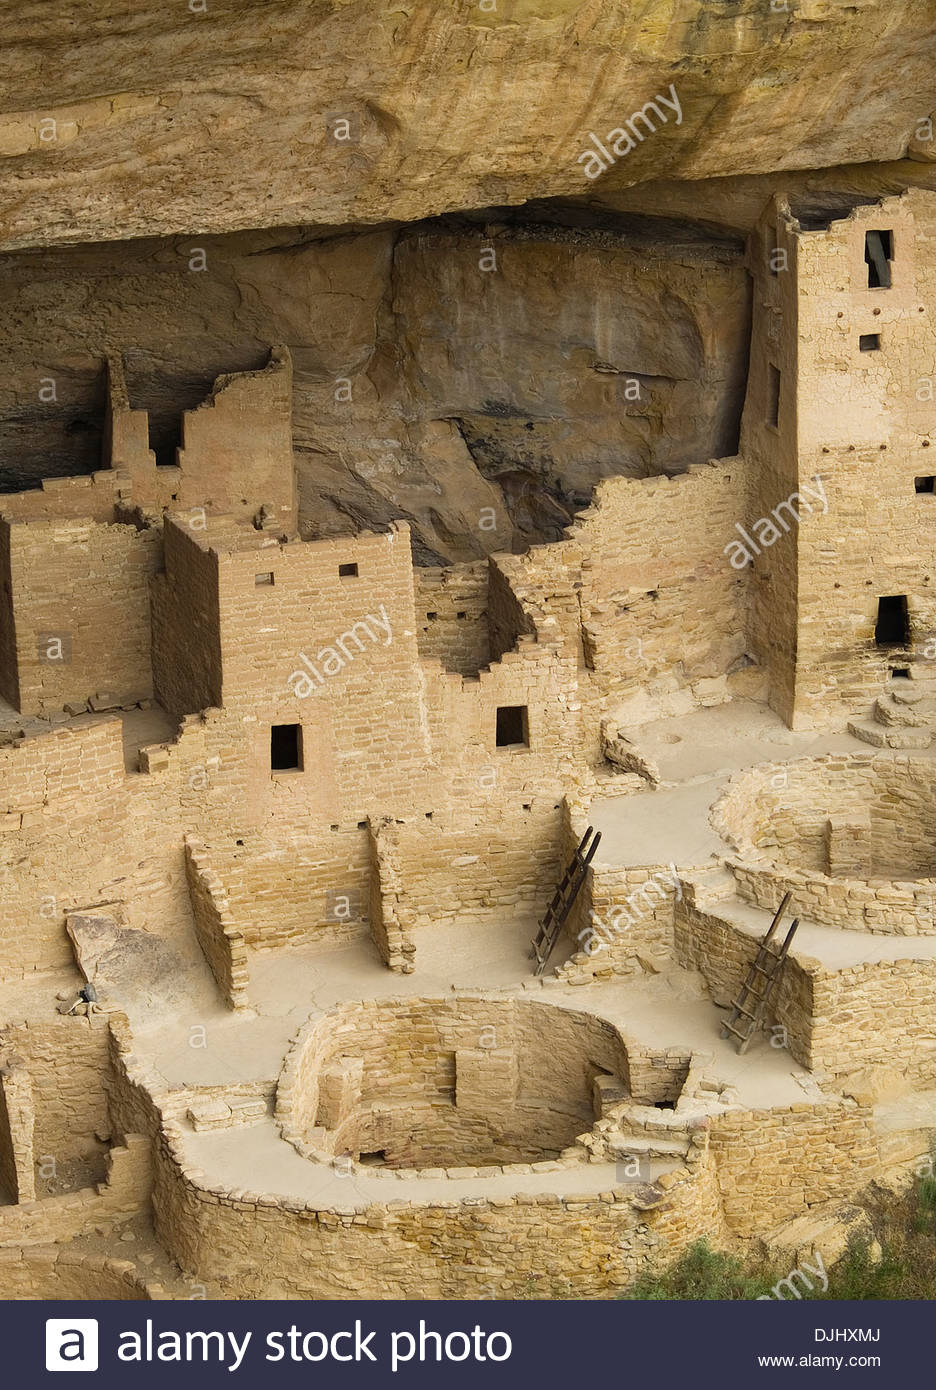 The ruins of Cliff Palace,Mesa Verde,Colorado - Stock Image